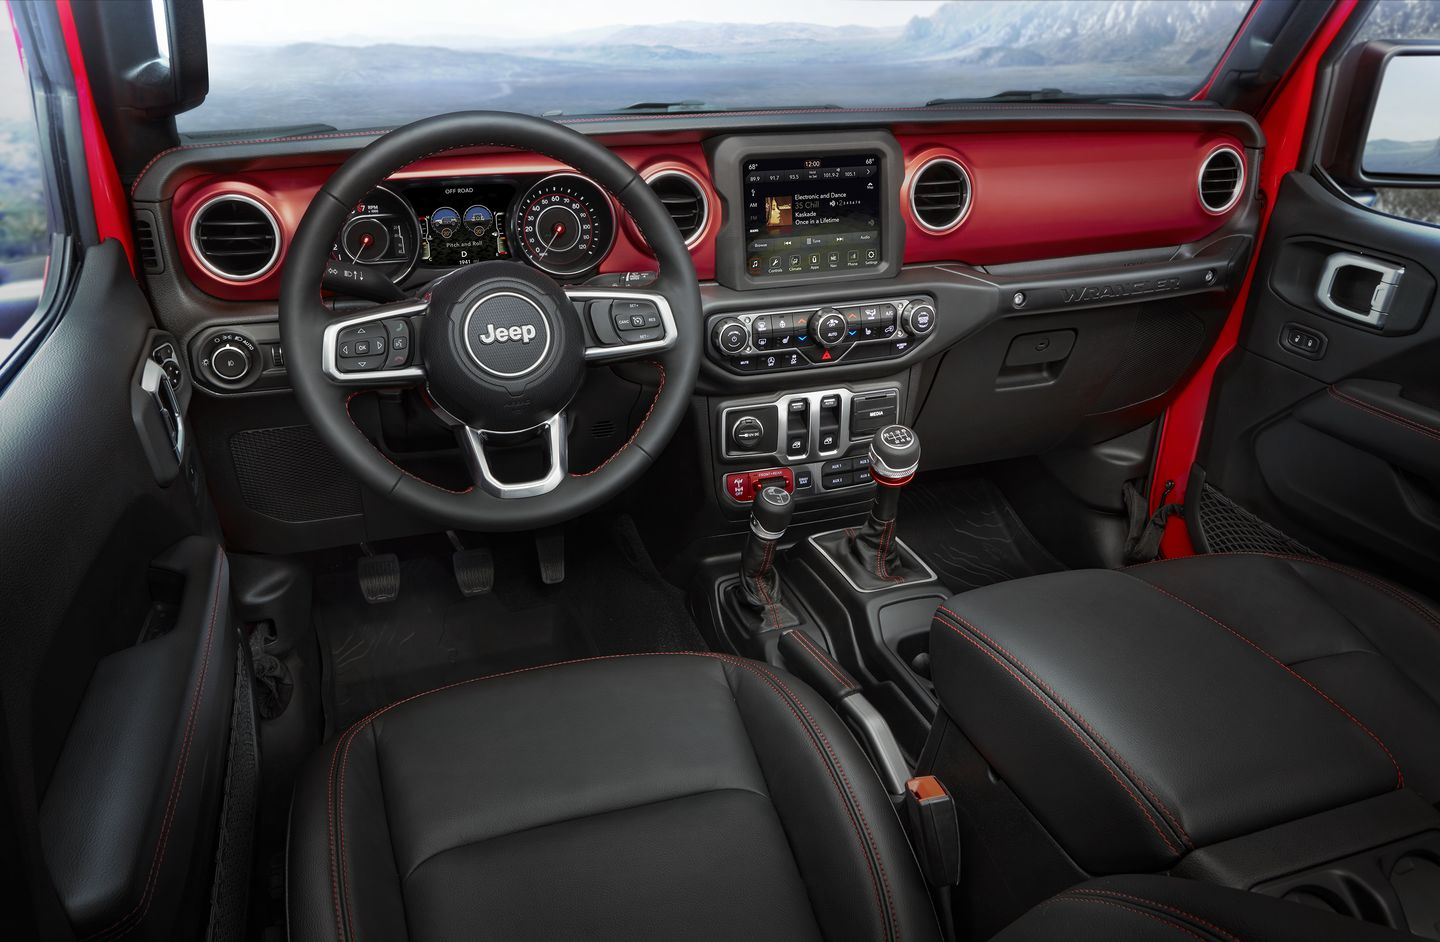 2019 Jeep Wrangler - Interior